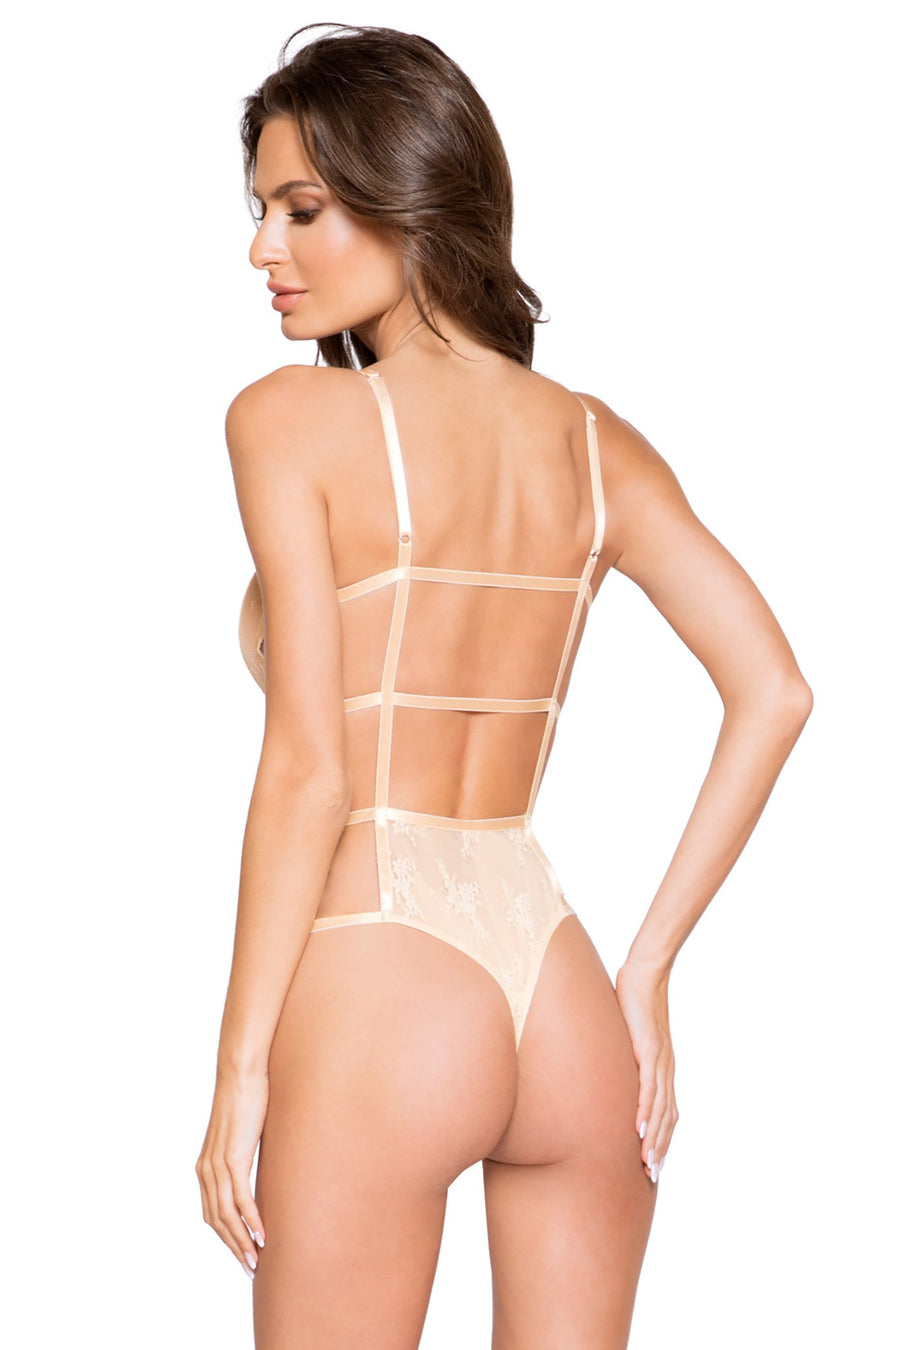 Classic Full Front Cover Lace Teddy with Back Strap Details - Intimates, Roma - YourLamode